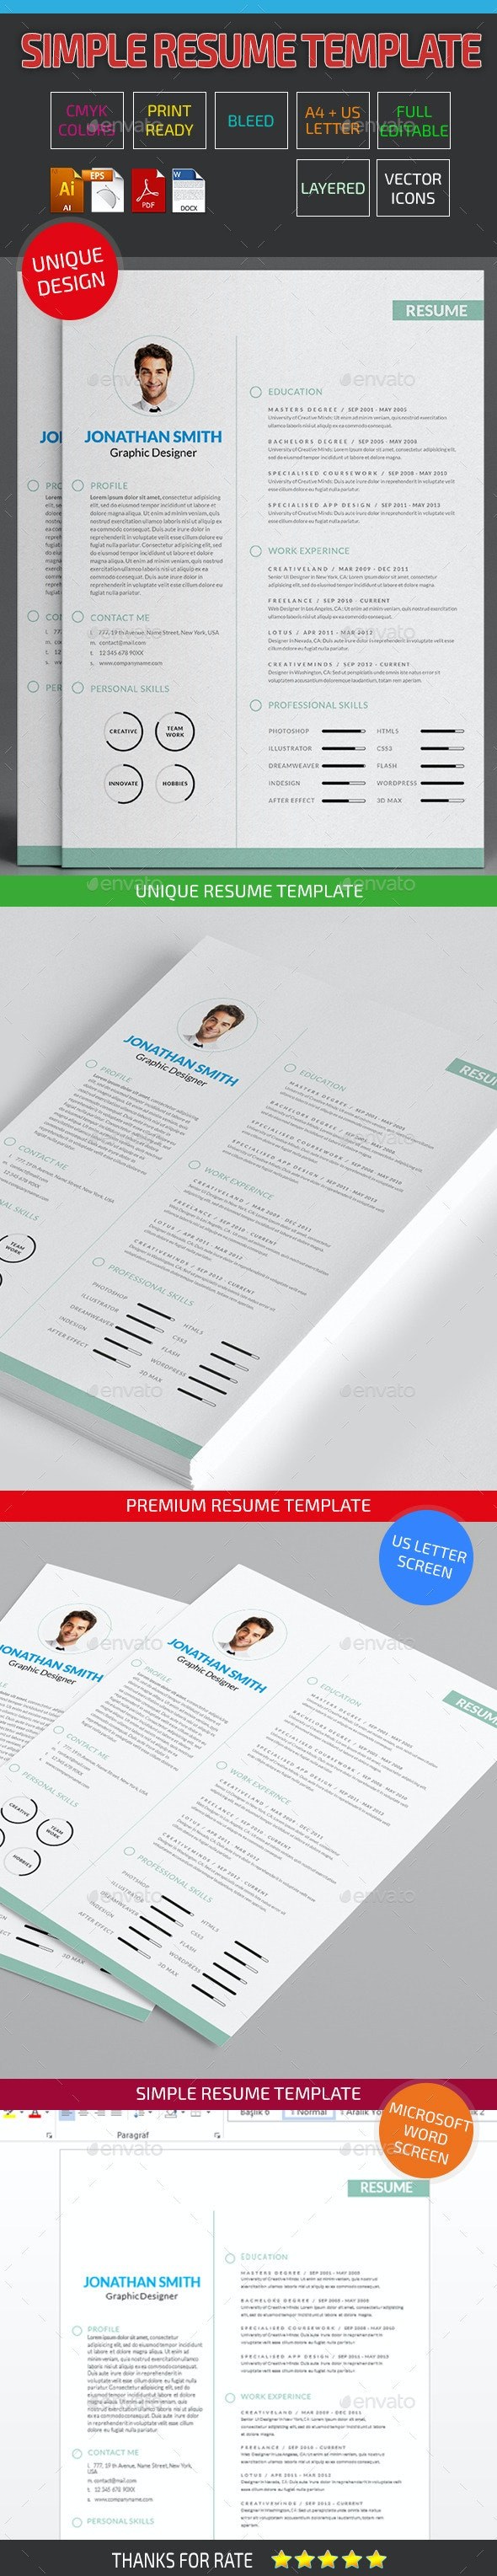 Simple Resume Template 07 - Resumes Stationery